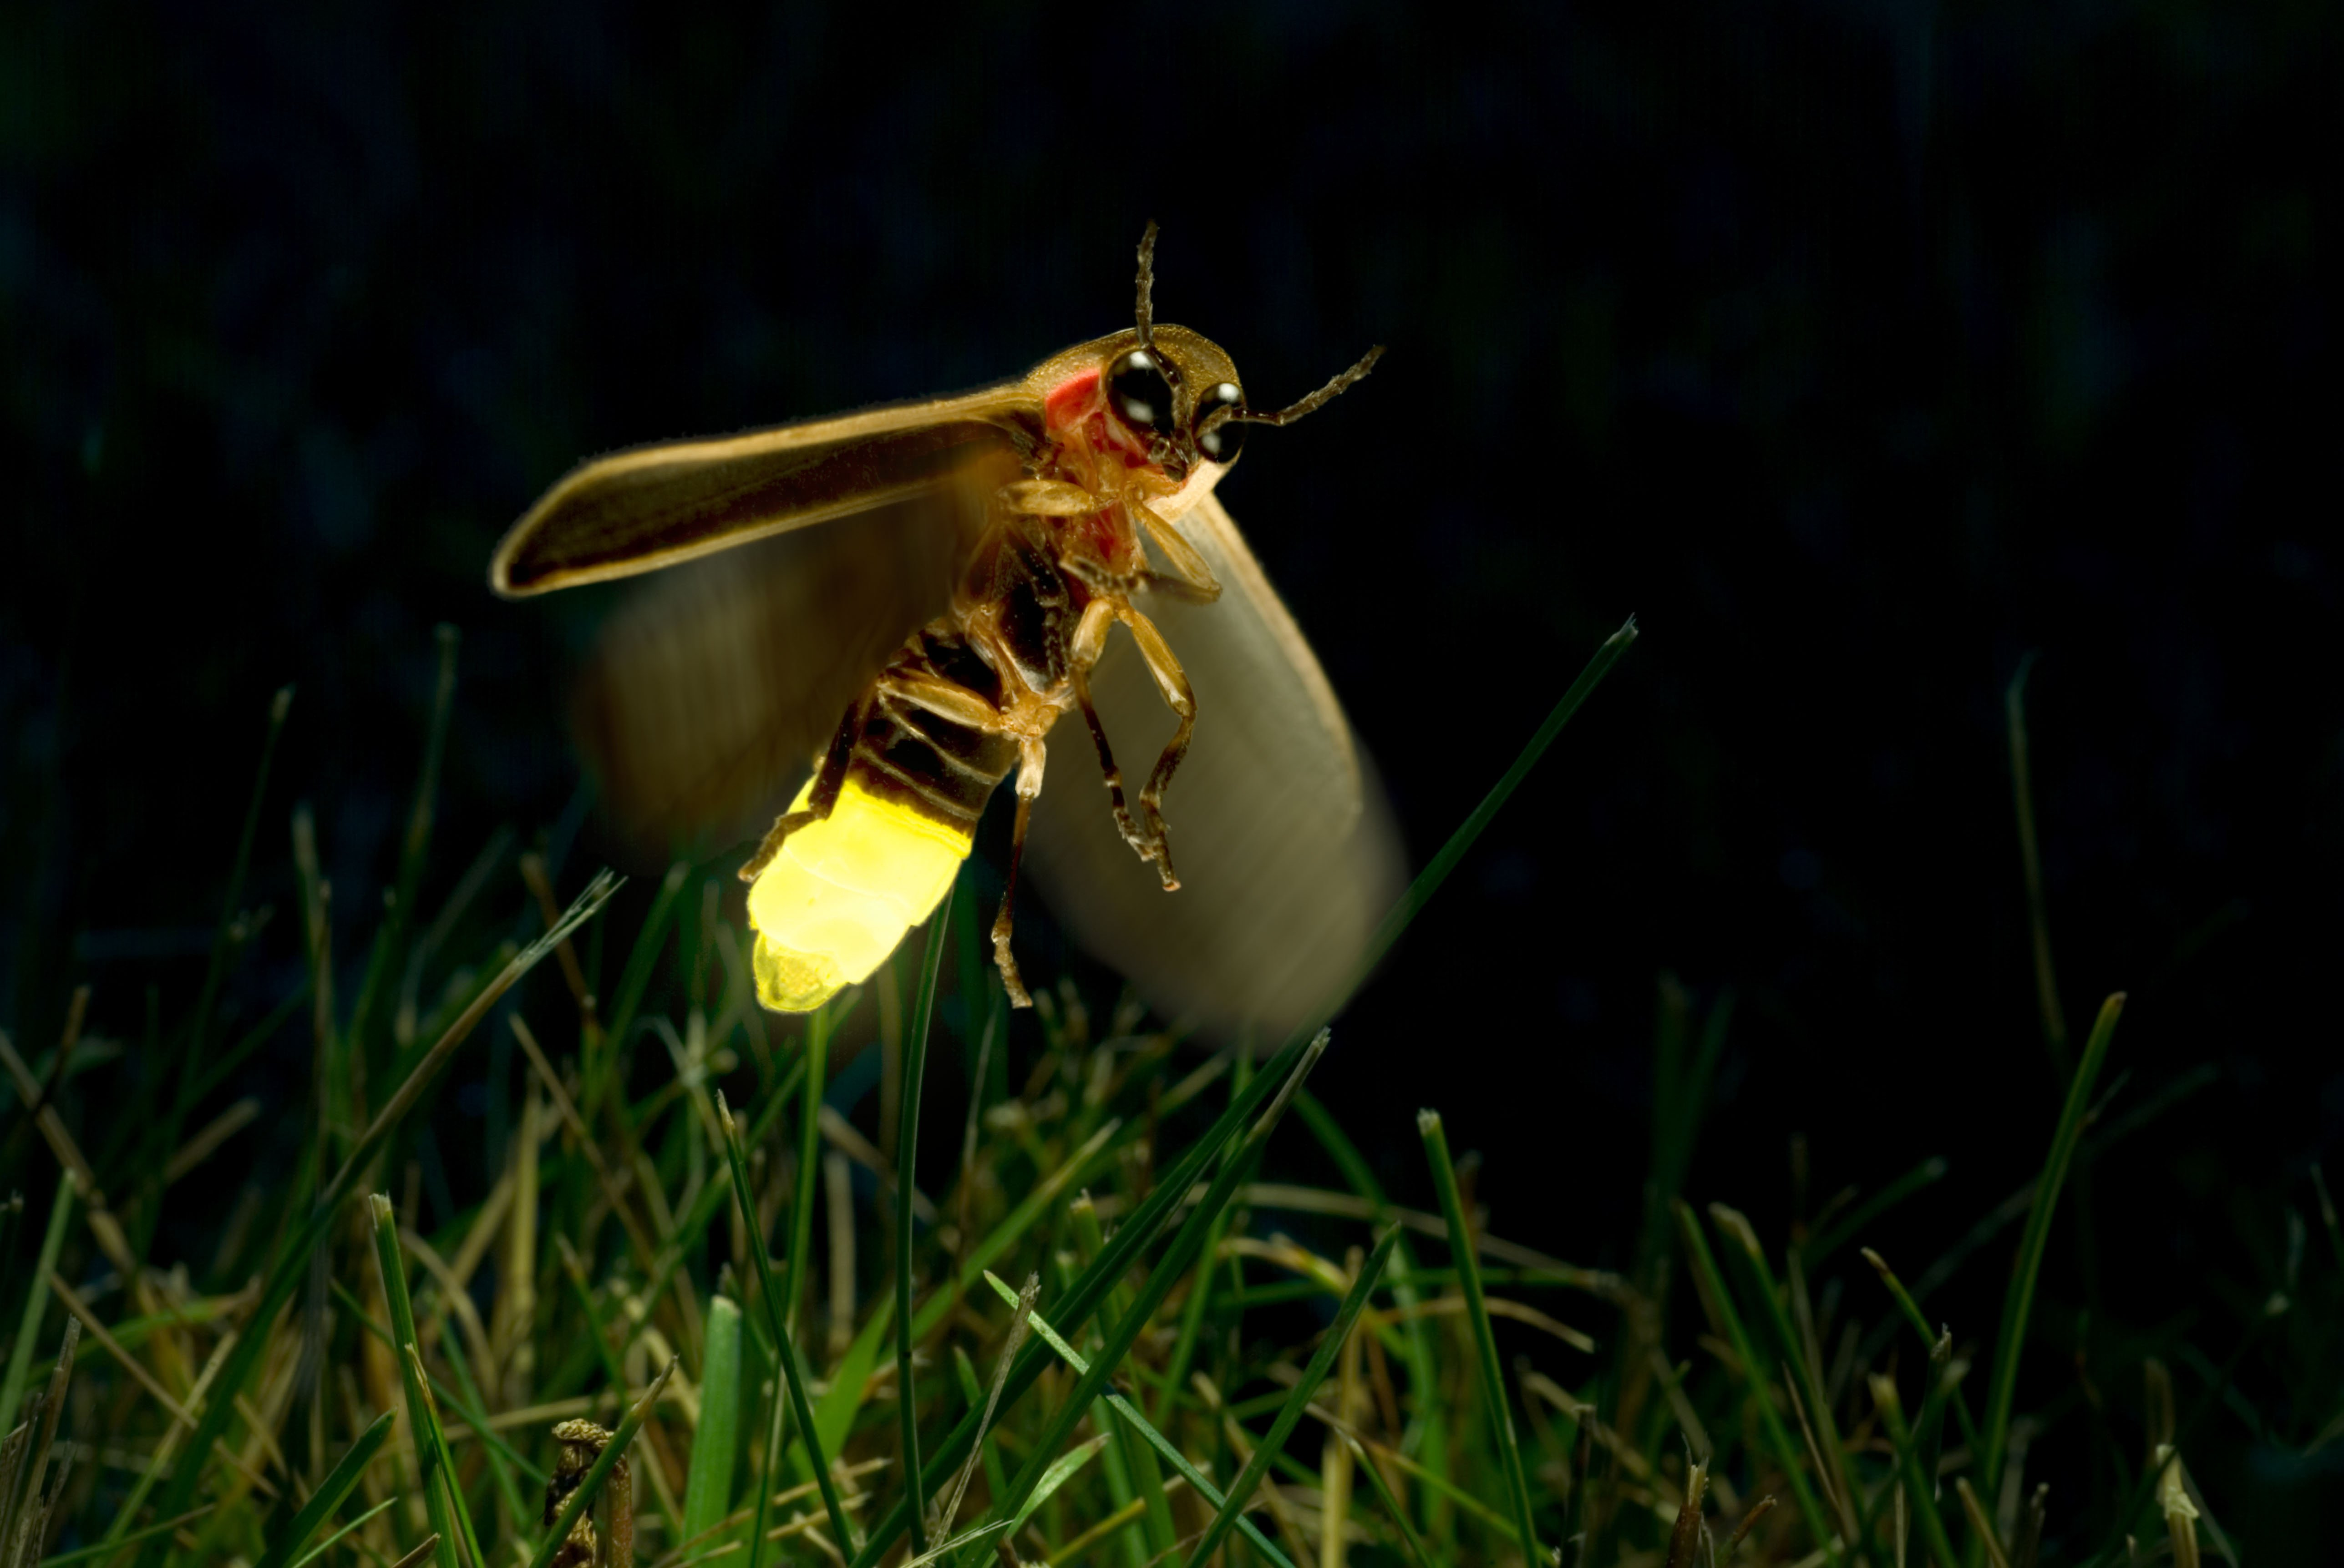 firefly insect at night wallpaper